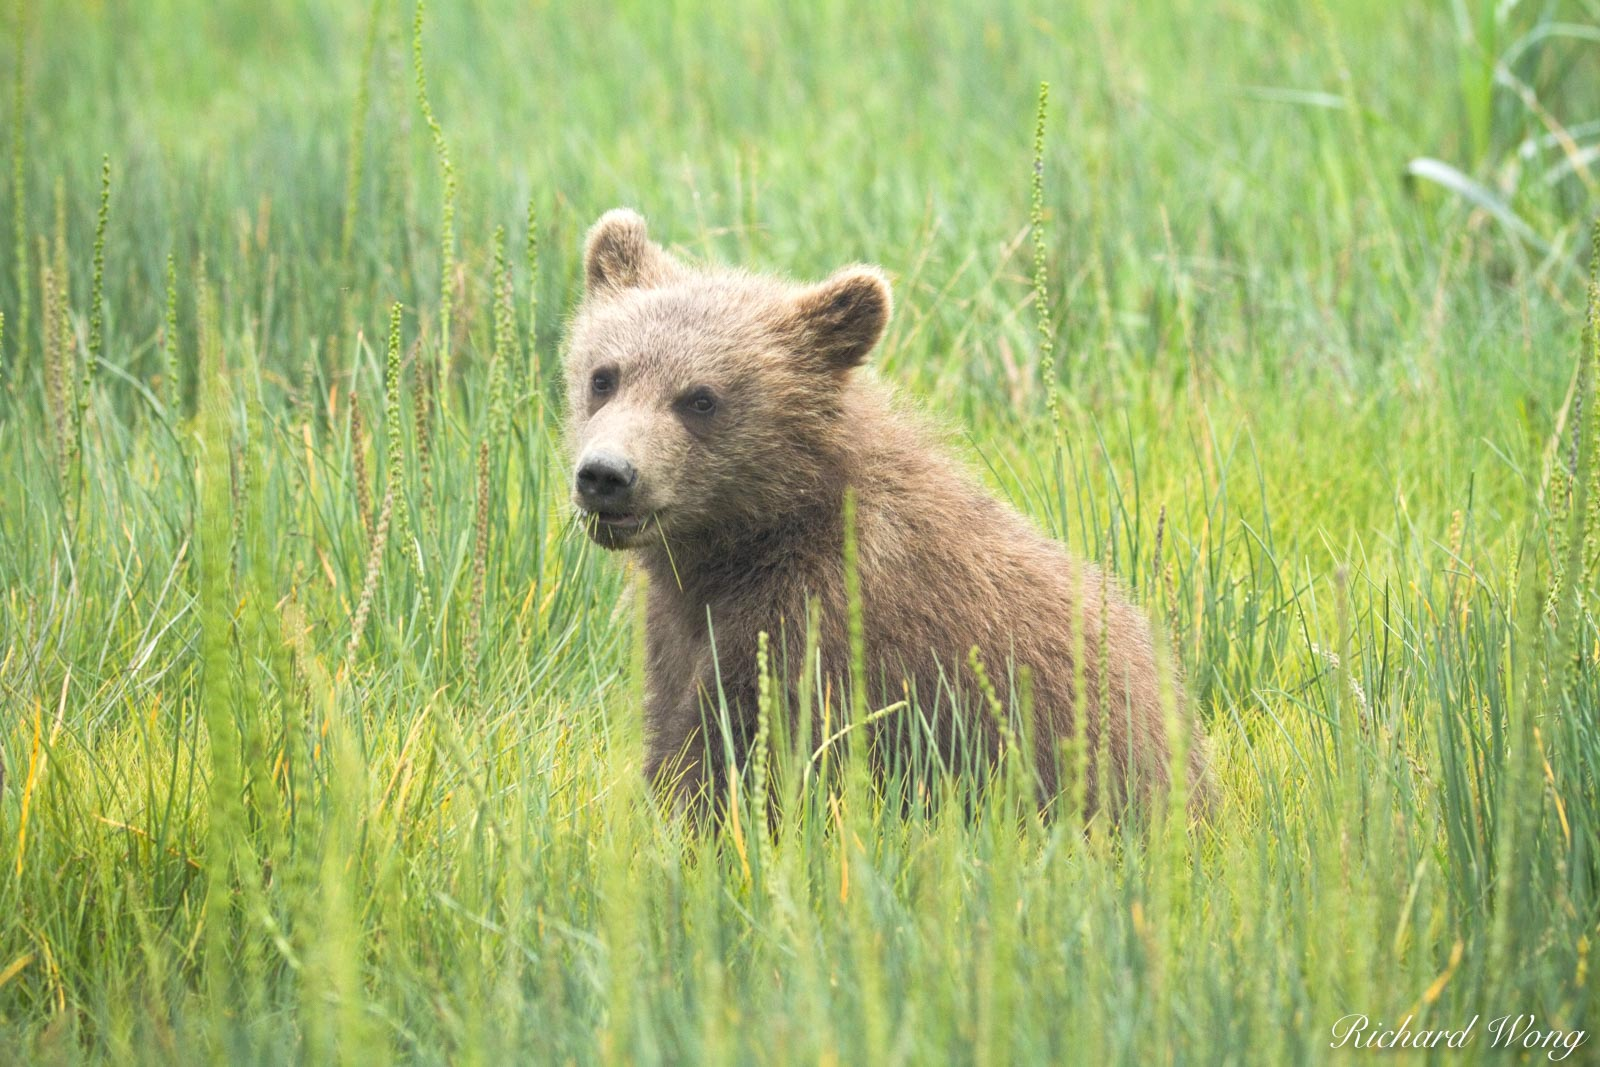 Grizzly Bear Cub Eating Grass in Meadow, Lake Clark National Park, Alaska, photo, photo